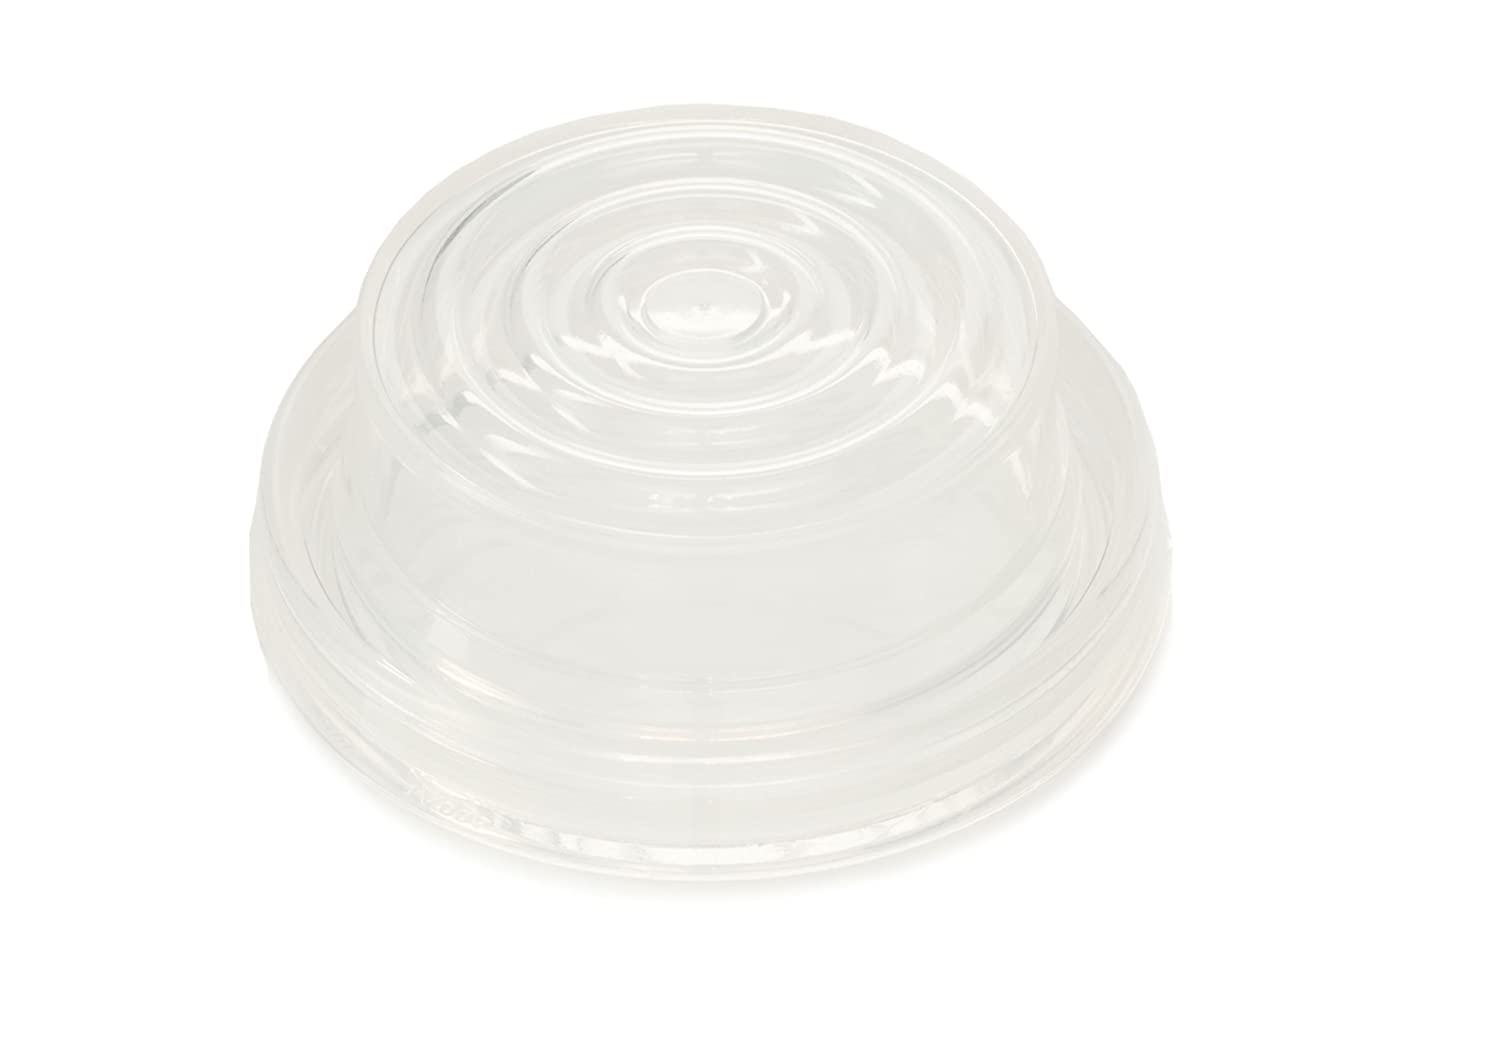 Philips AVENT Comfort Breast Pump Diaphragm for Double and Single Electric Pumps SCF111/00